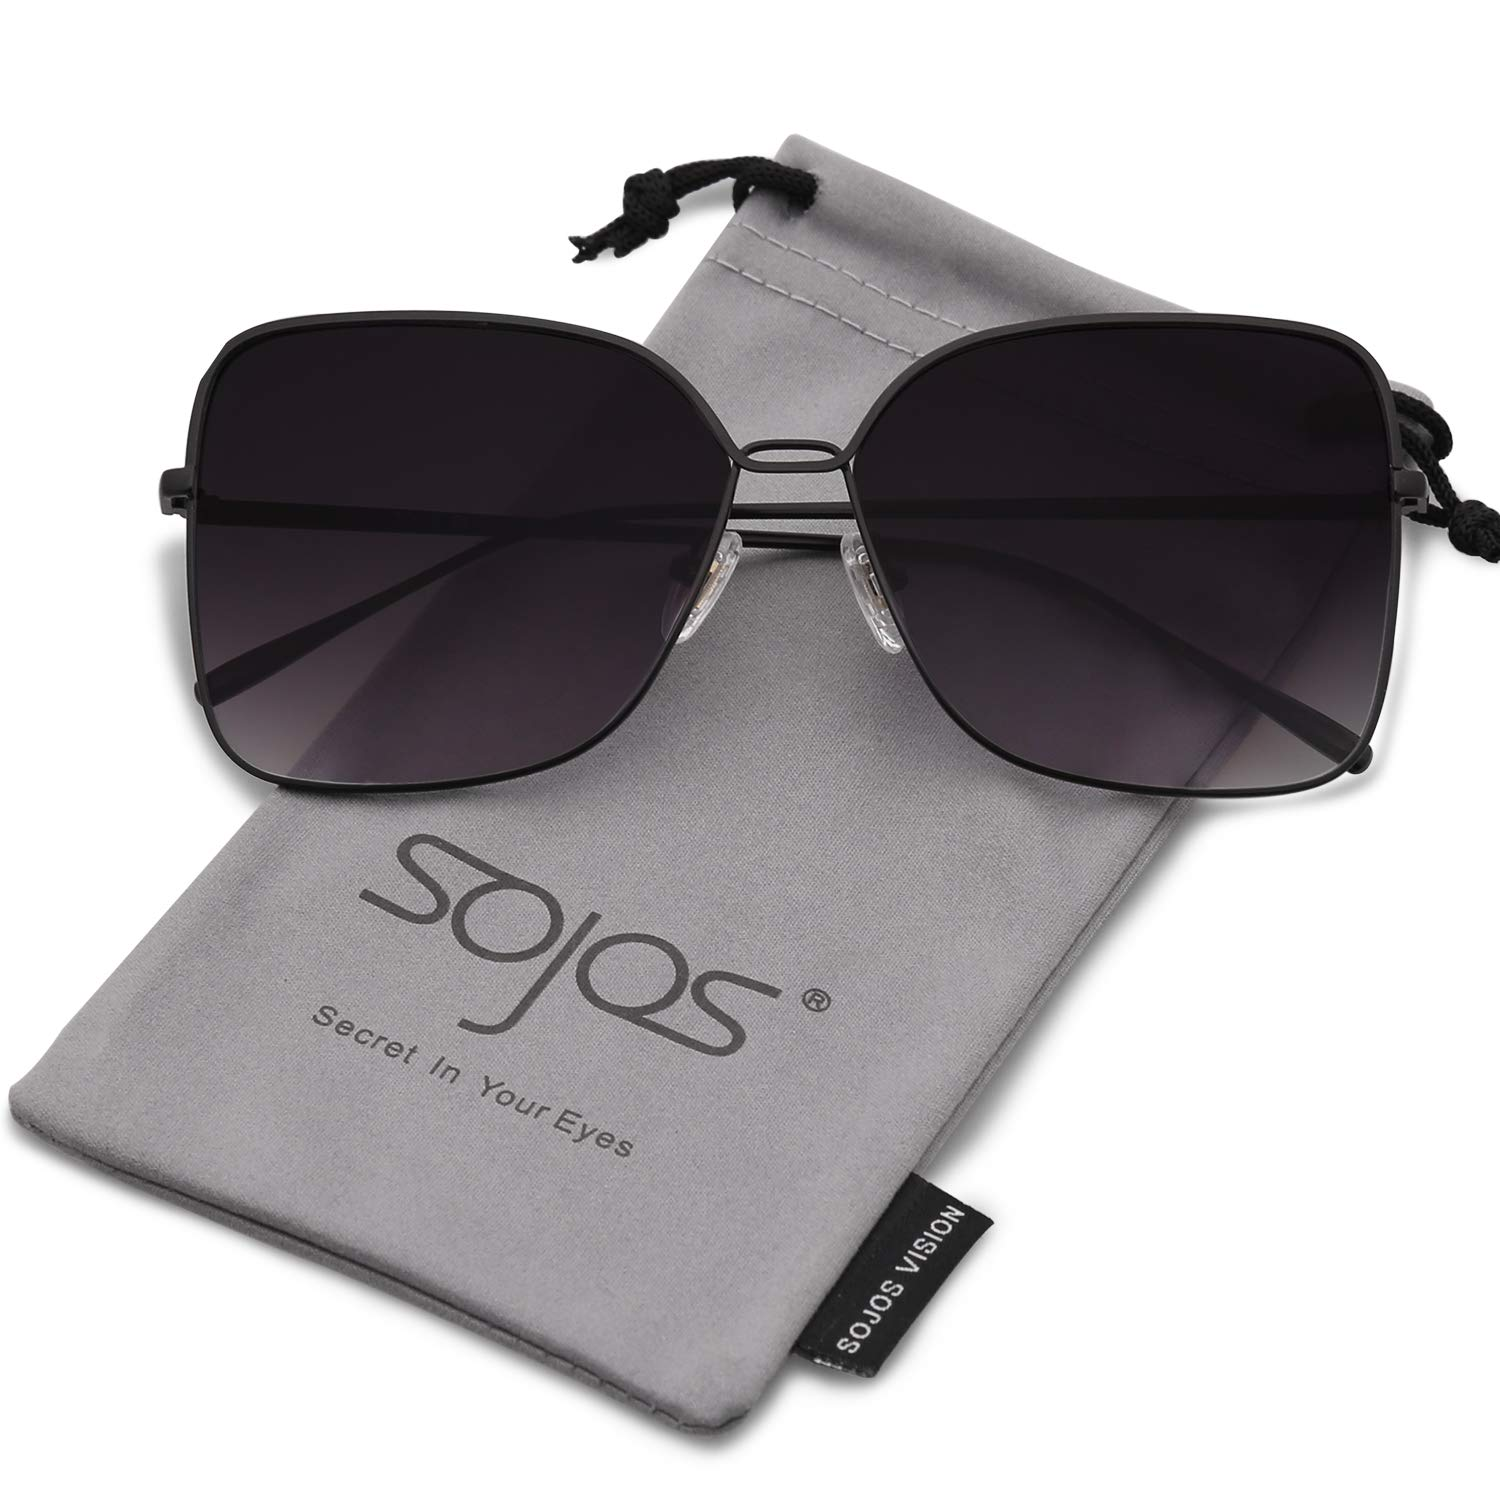 SOJOS Fashion Square Oversized Sunglasses Metal Frame Flat Mirrored Lens SJ1082 with Black Frame/Gradient Grey Lens by SOJOS